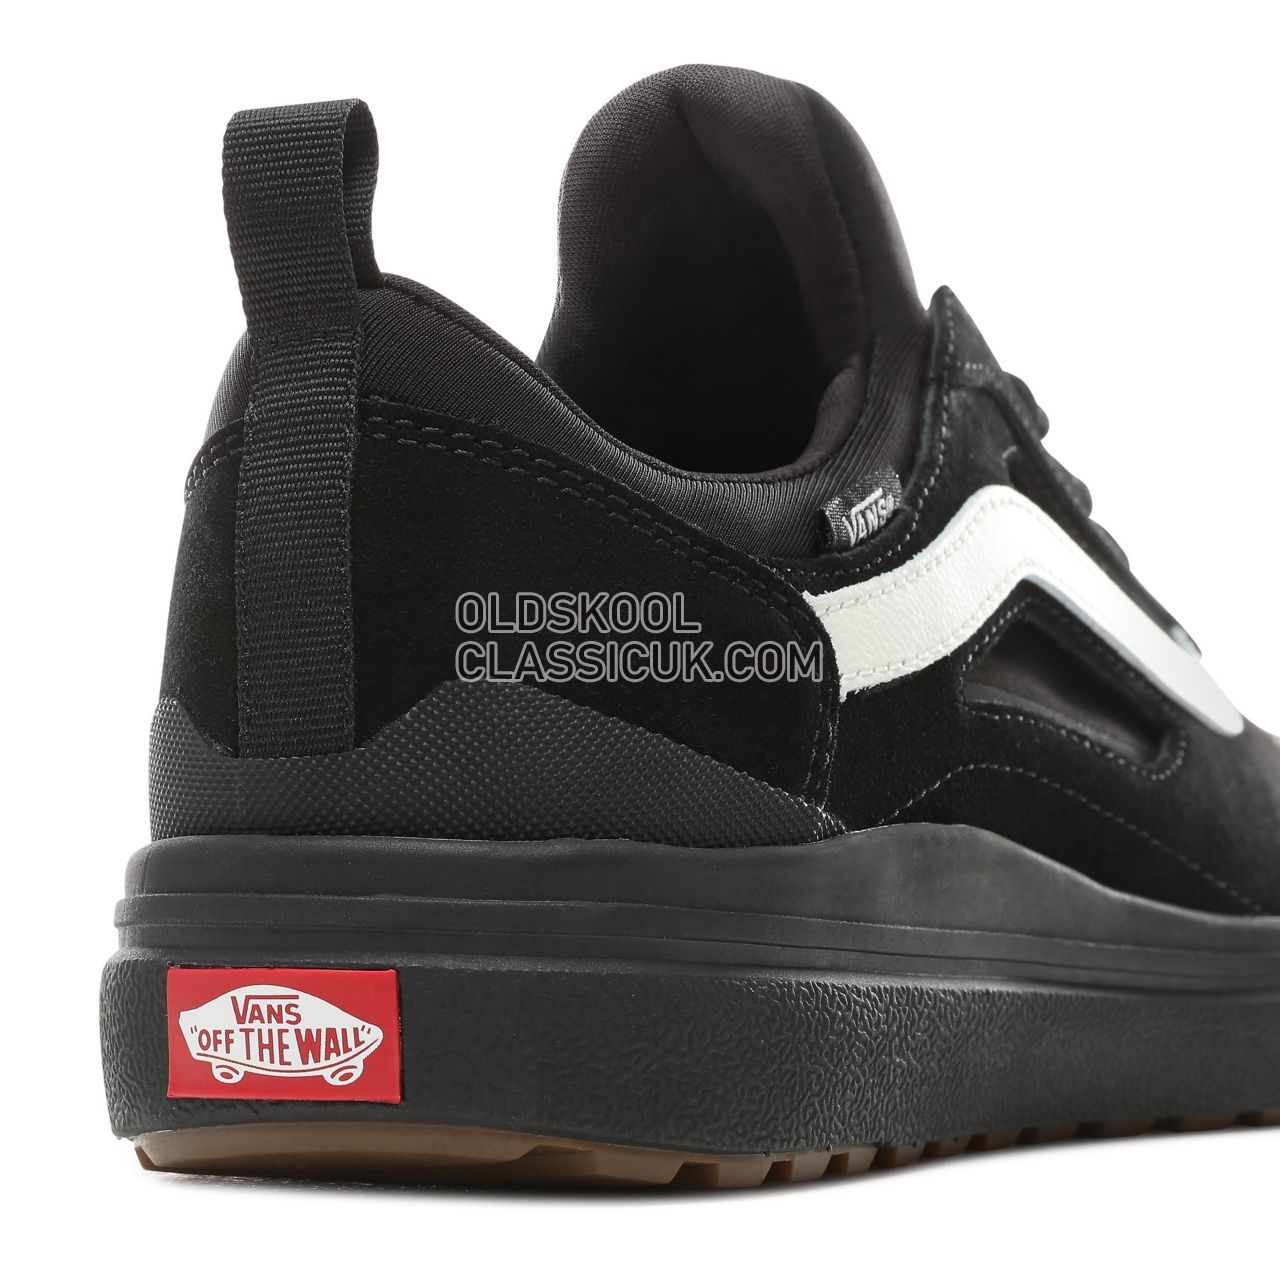 Vans Ultrarange 3D Sneakers Mens Black/Gum VN0A3TKWB9M Shoes